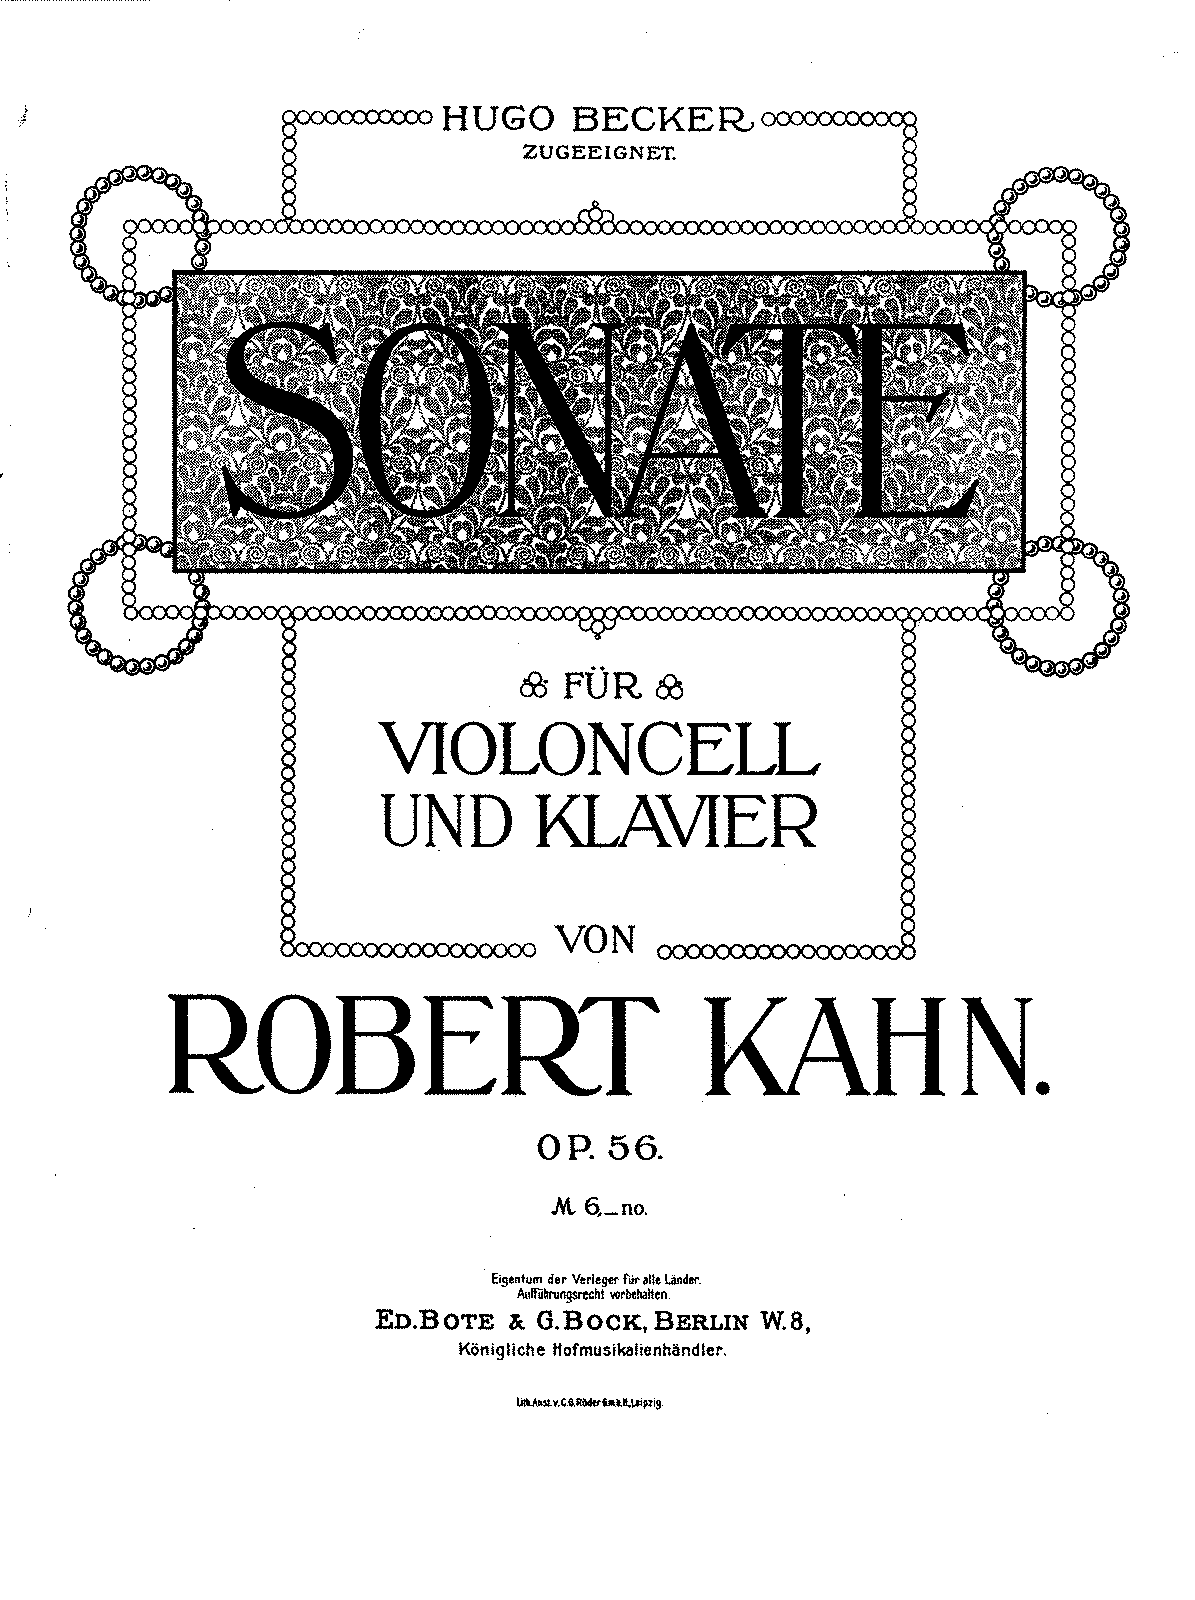 Kahn, Robert Cello Sonata Op.56 score.pdf